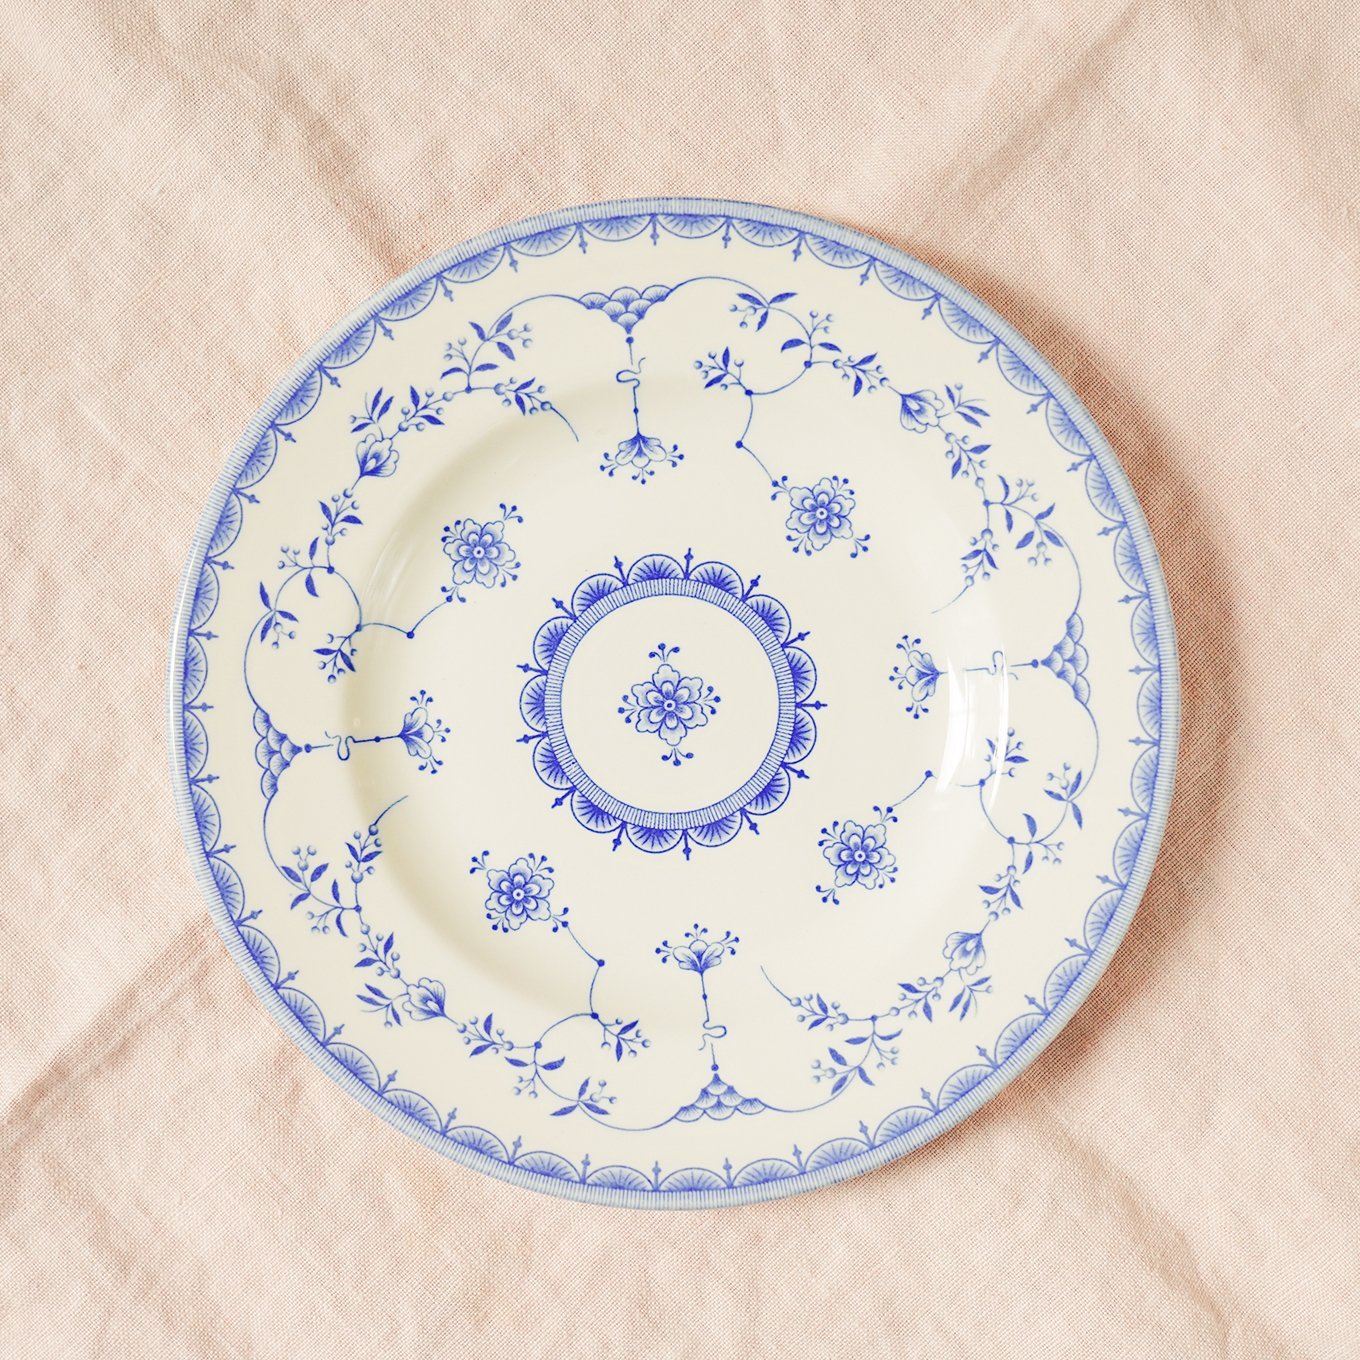 Queens Ingrid China - Vintage China plate on www.ashleybrookedesigns.com